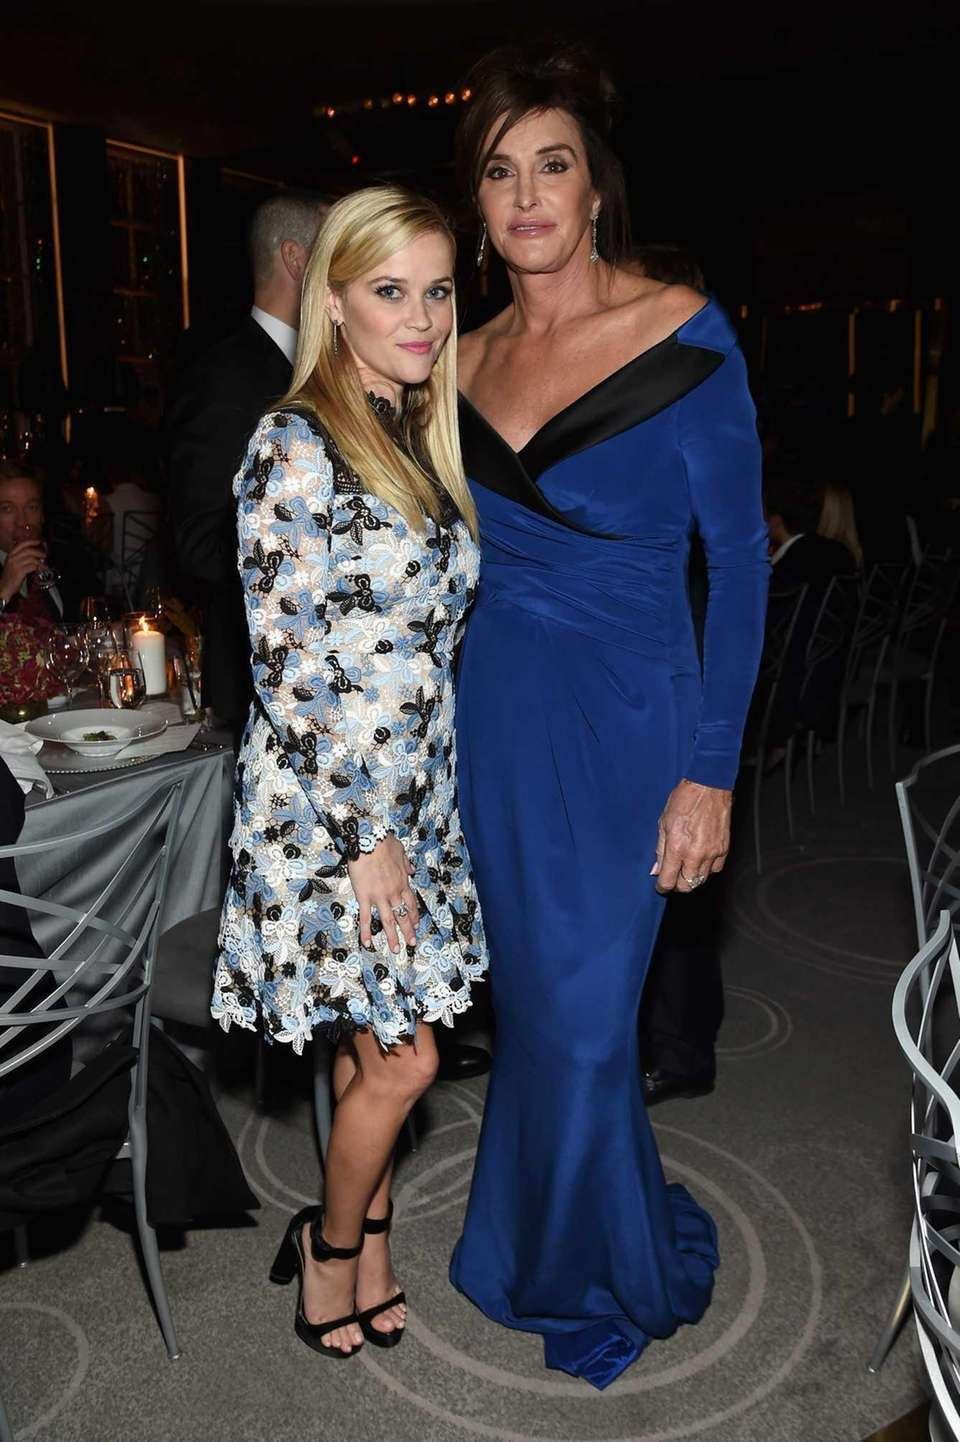 Honorees Reese Witherspoon, left, and Caitlyn Jenner attend